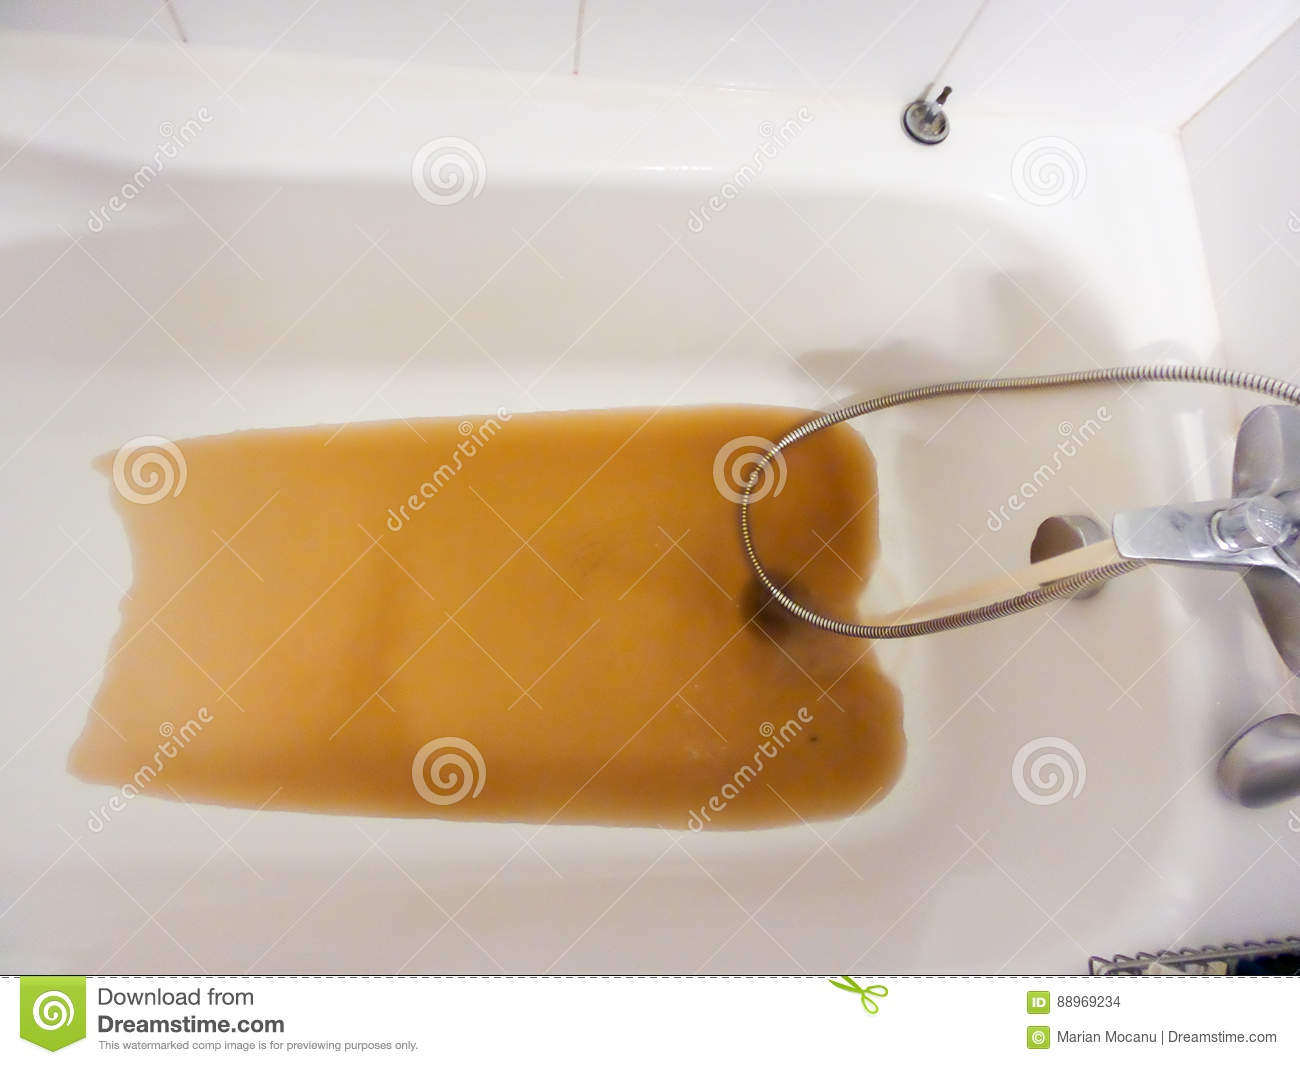 Rusty Water Running From A Faucet Stock Image - Image of equipment ...